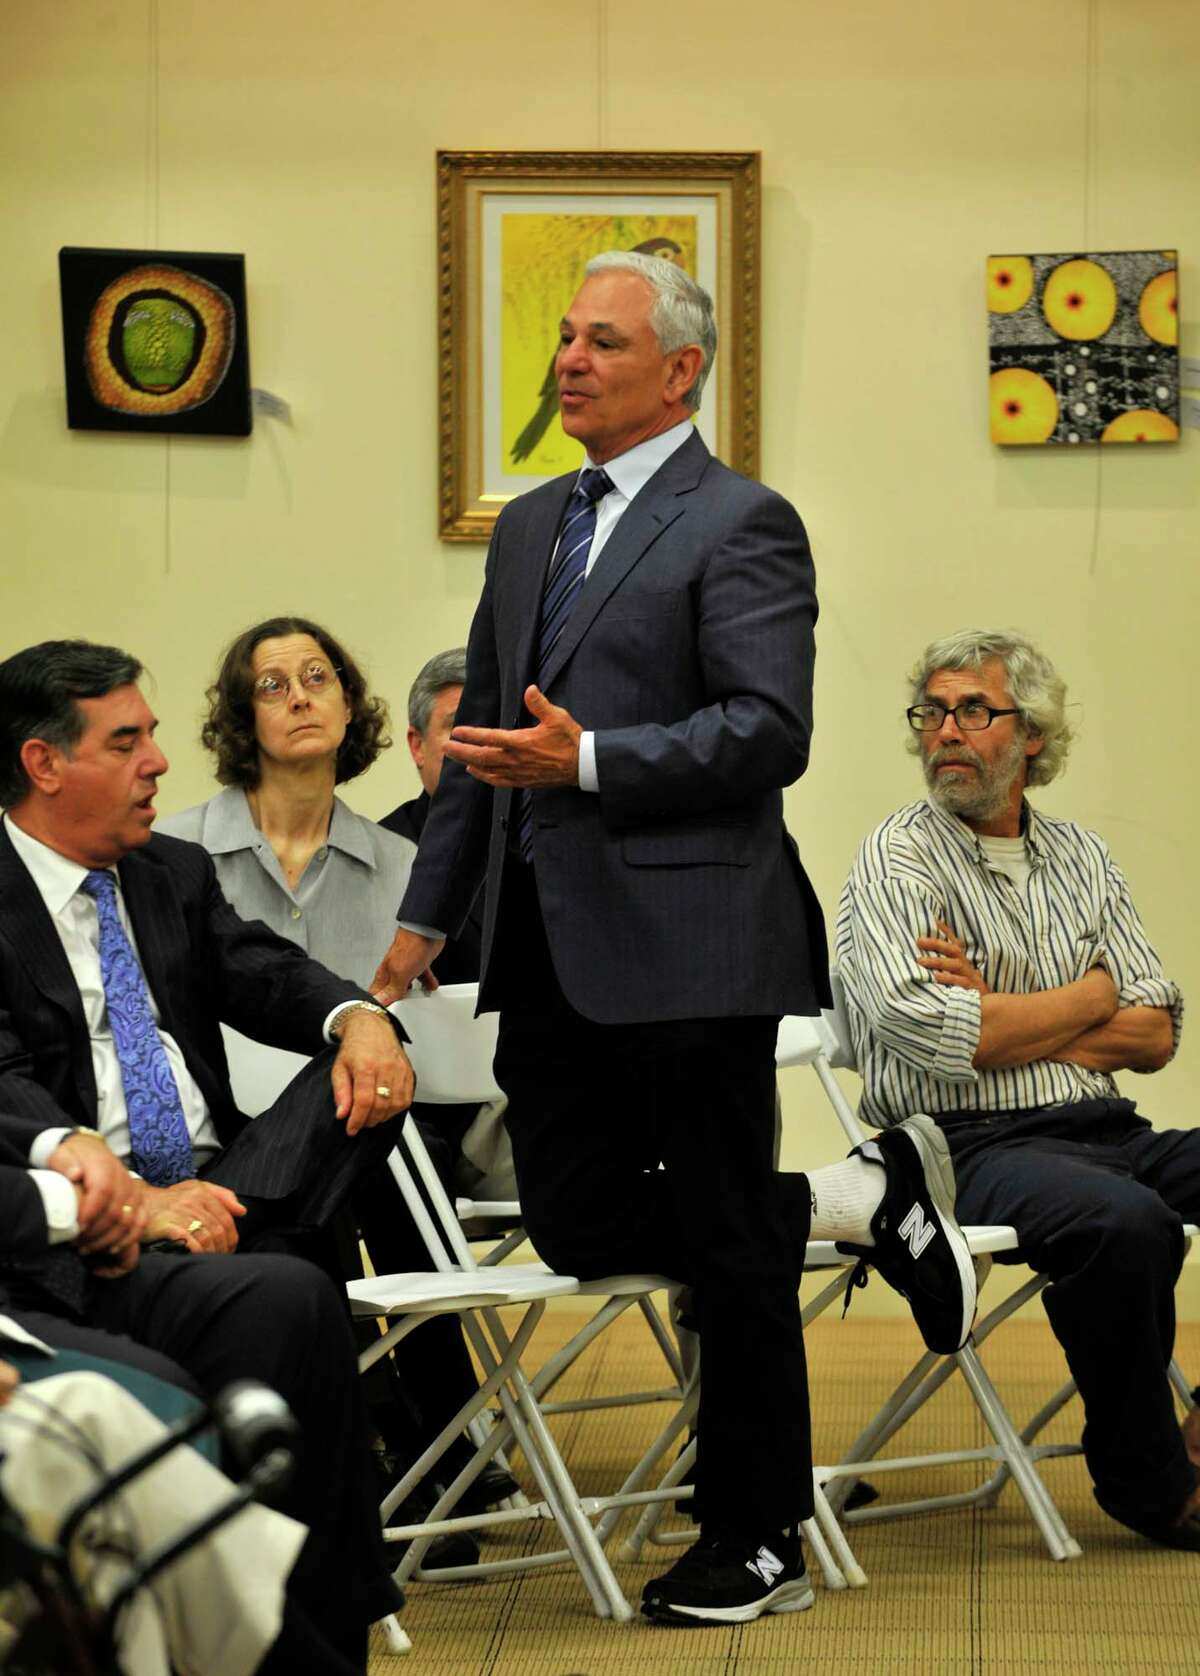 Former Major League Baseball Commissioner Fay Vincent lets Bobby Valentine answer a question from an audience member during Vincent's speech on Civility in Sports at the Ferguson Library in Stamford on Tuesday, June 11, 2013.